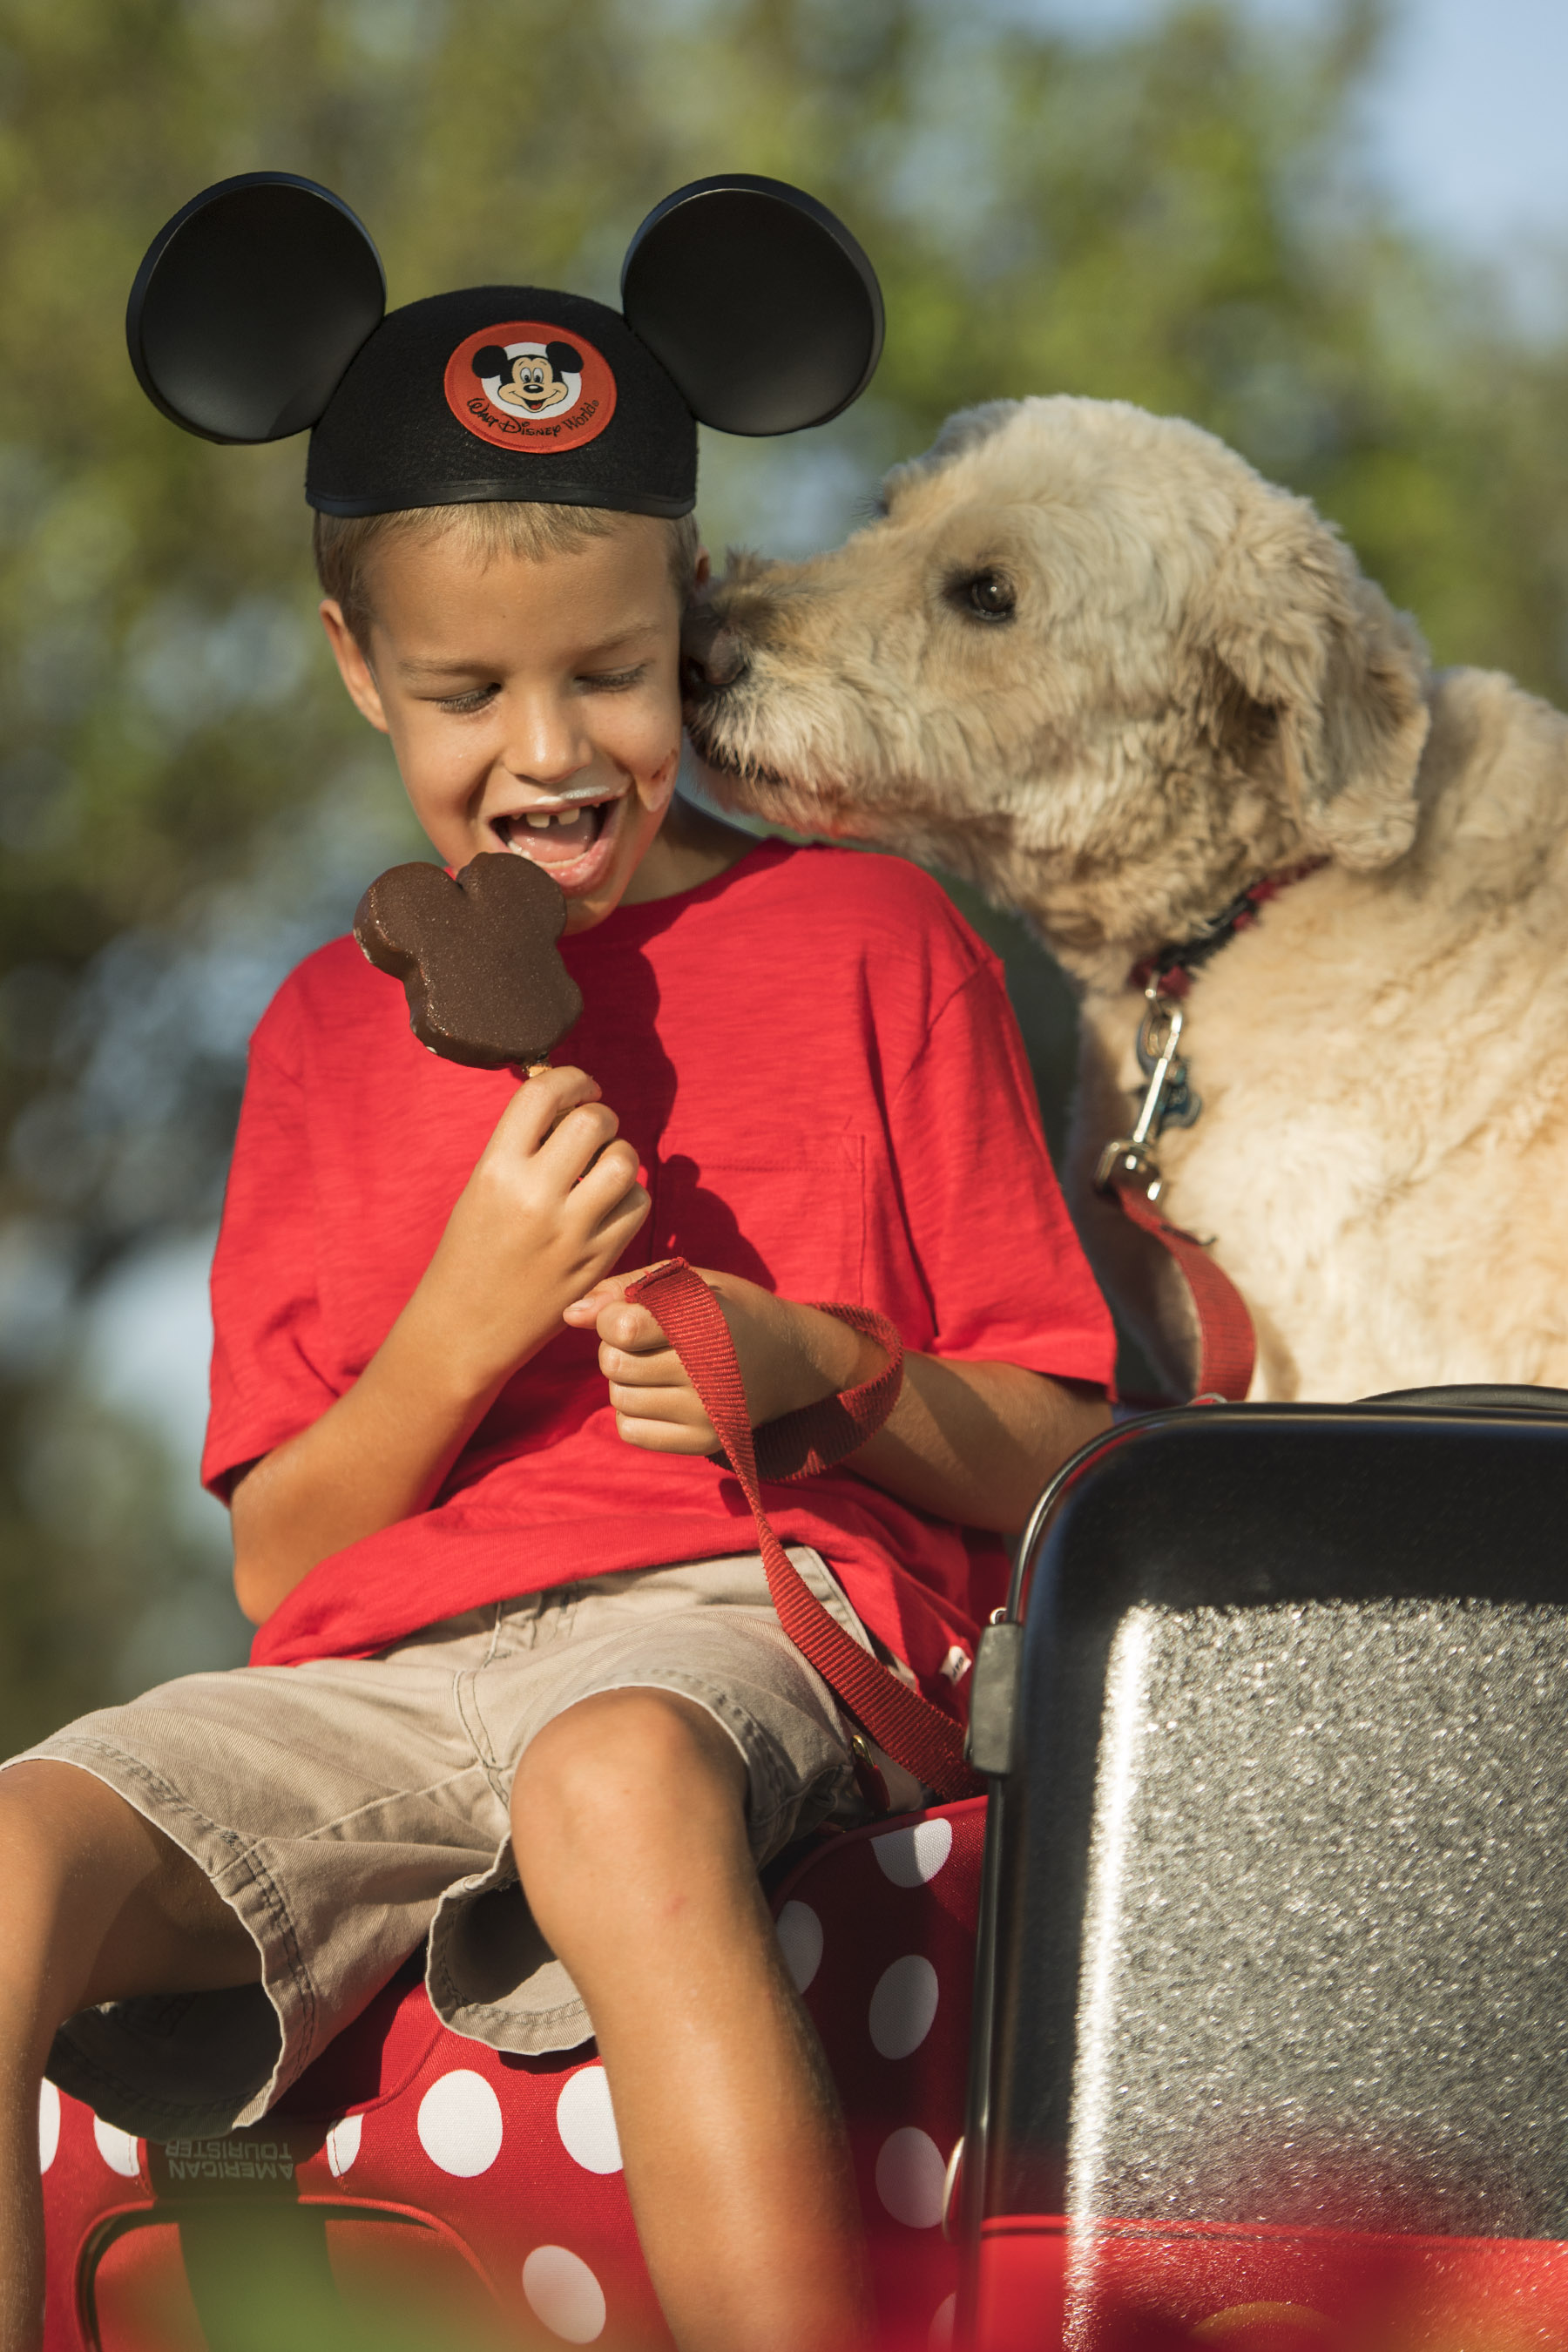 Beginning Sunday, Oct. 15, 2017, Walt Disney World Resort will welcome guests Ð and their canine companions Ð to four resort hotels: DisneyÕs Yacht Club Resort, Disney Port Orleans Resort Ð Riverside, DisneyÕs Art of Animation Resort and the cabins at Disney's Fort Wilderness Resort & Campground. Each resort offers a PlutoÕs Welcome Kit with special amenities, easy access to outdoor pet exercise areas and green spaces with pet relief areas. The new service permits up to two dogs per guest room. (David Roark, photographer)